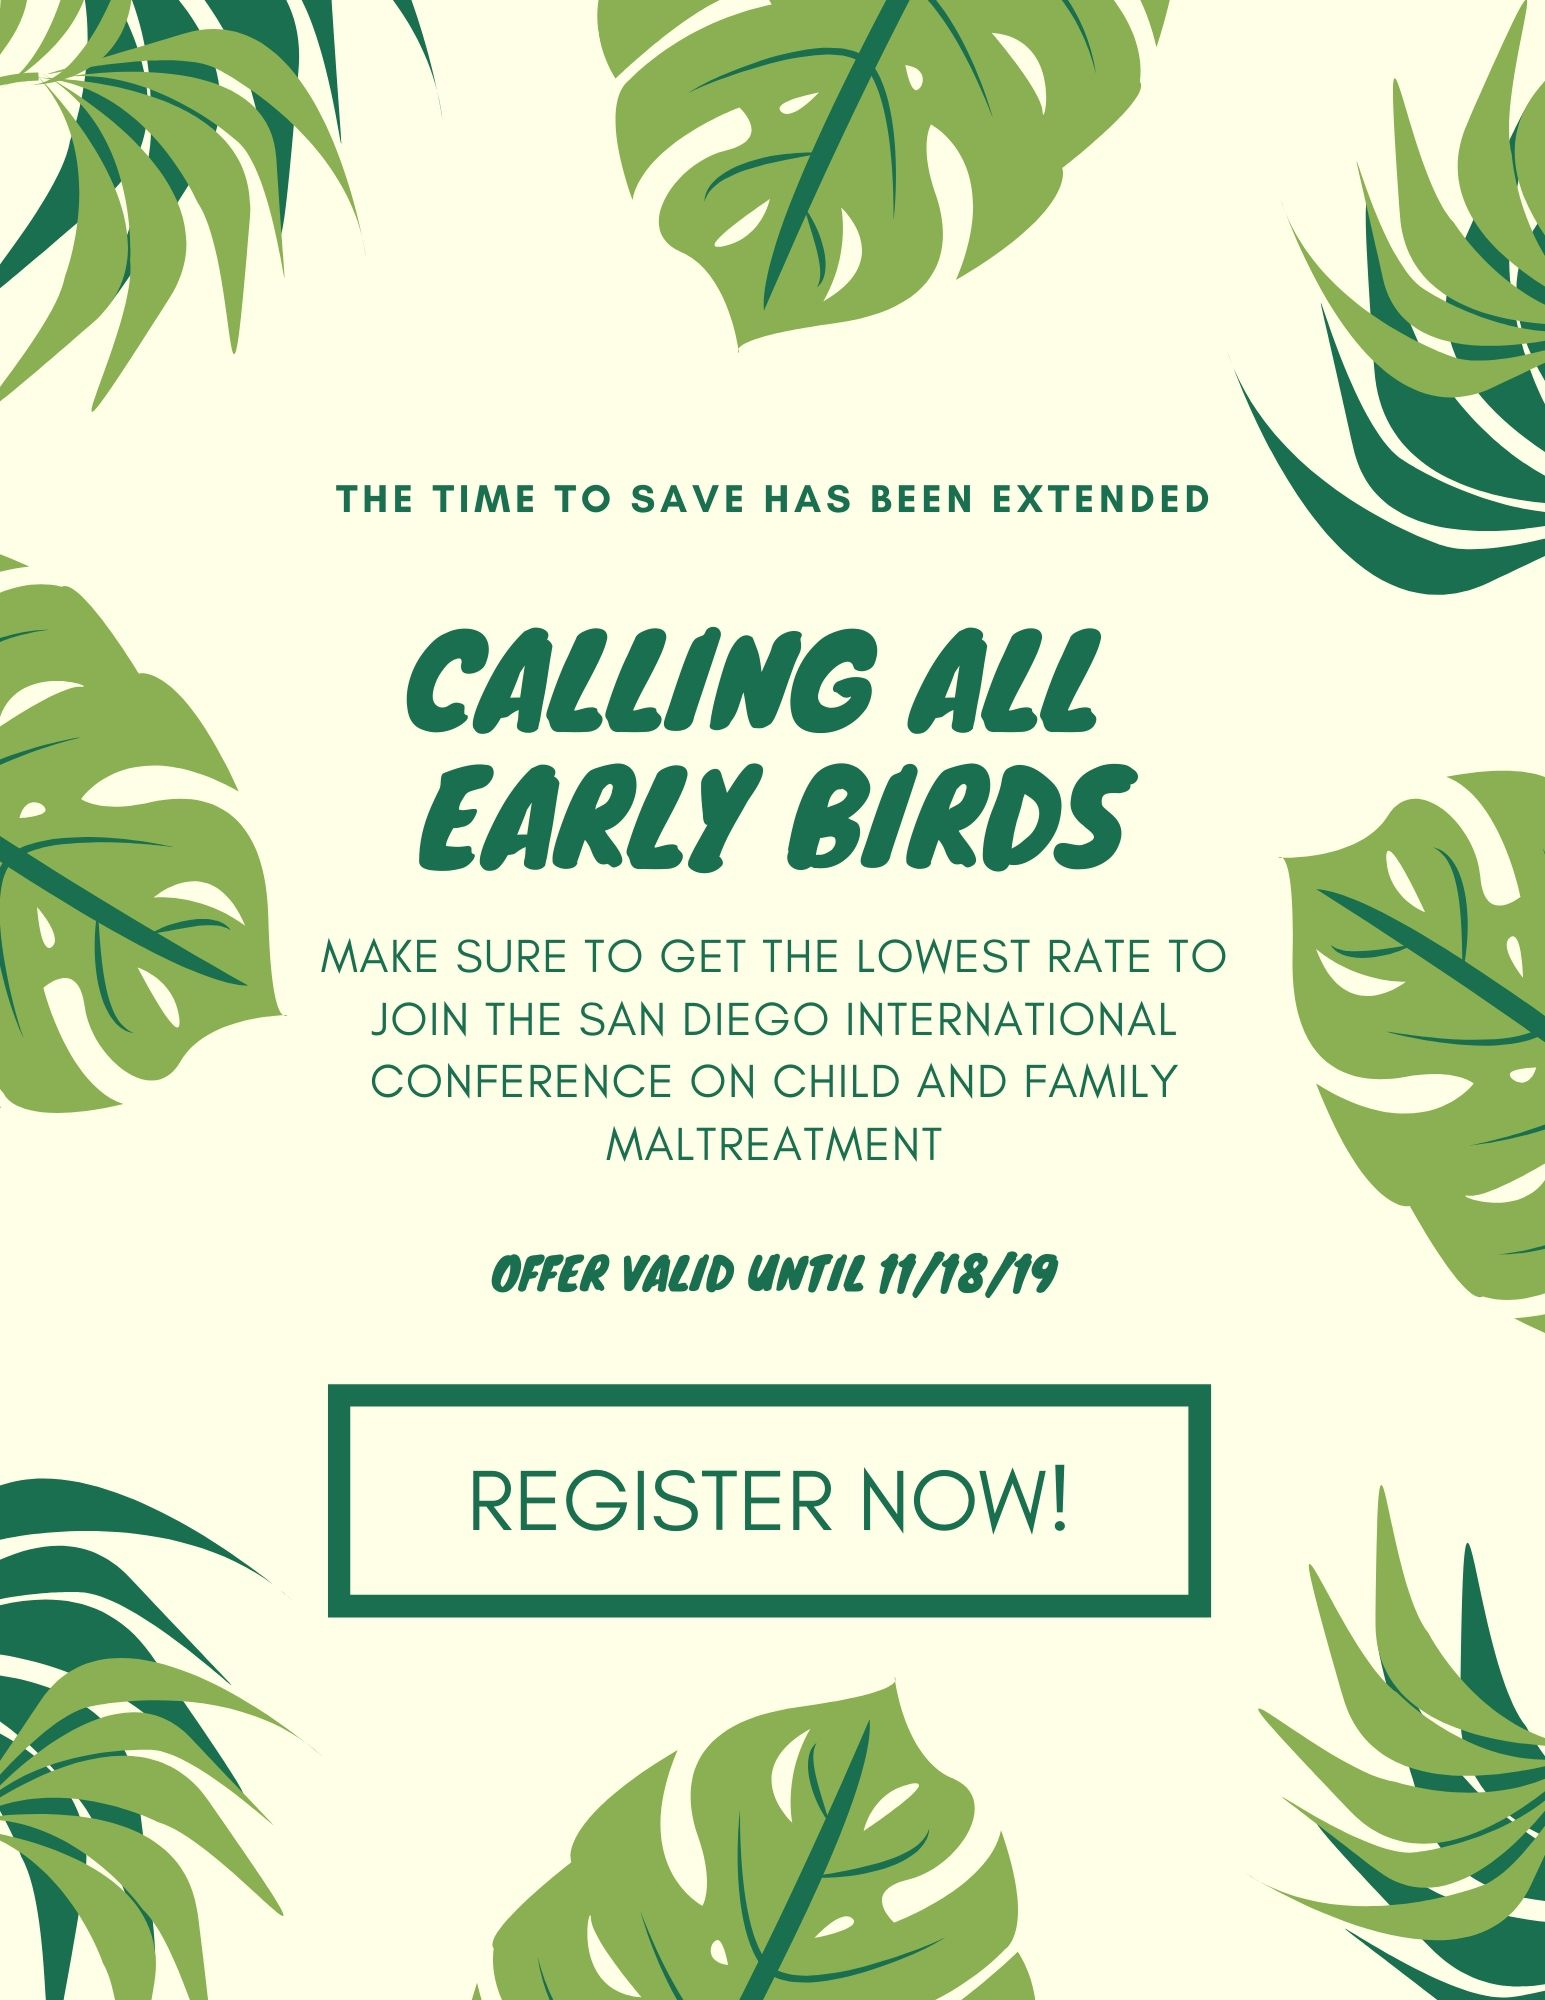 CALLING ALL EARLY BIRDS